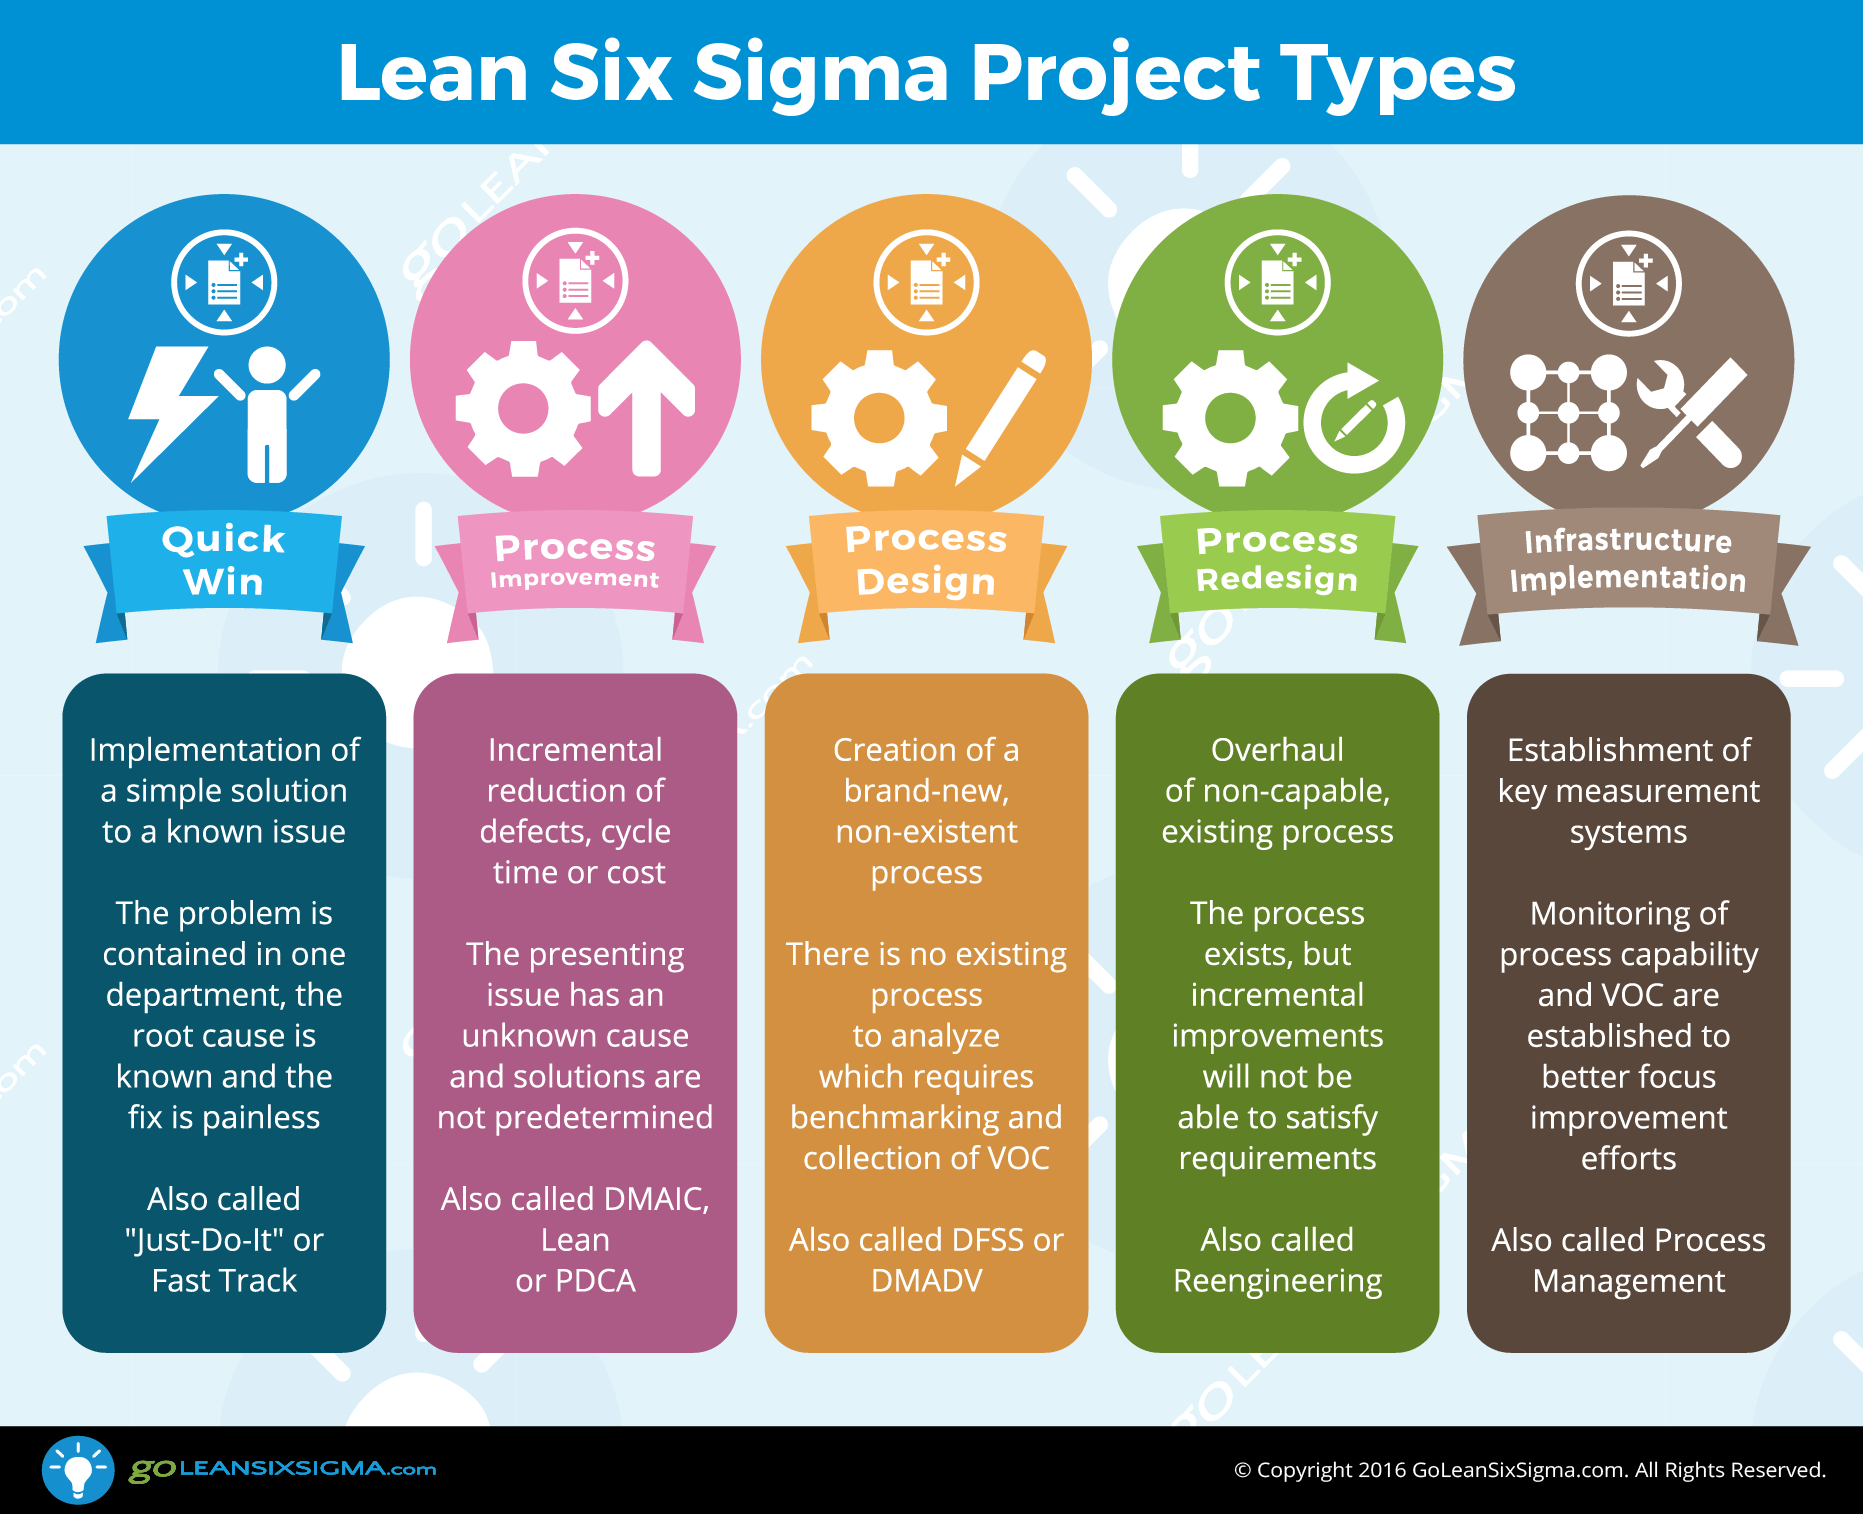 5 lean six sigma project types goleansixsigma lean six sigma project types goleansixsigma xflitez Images